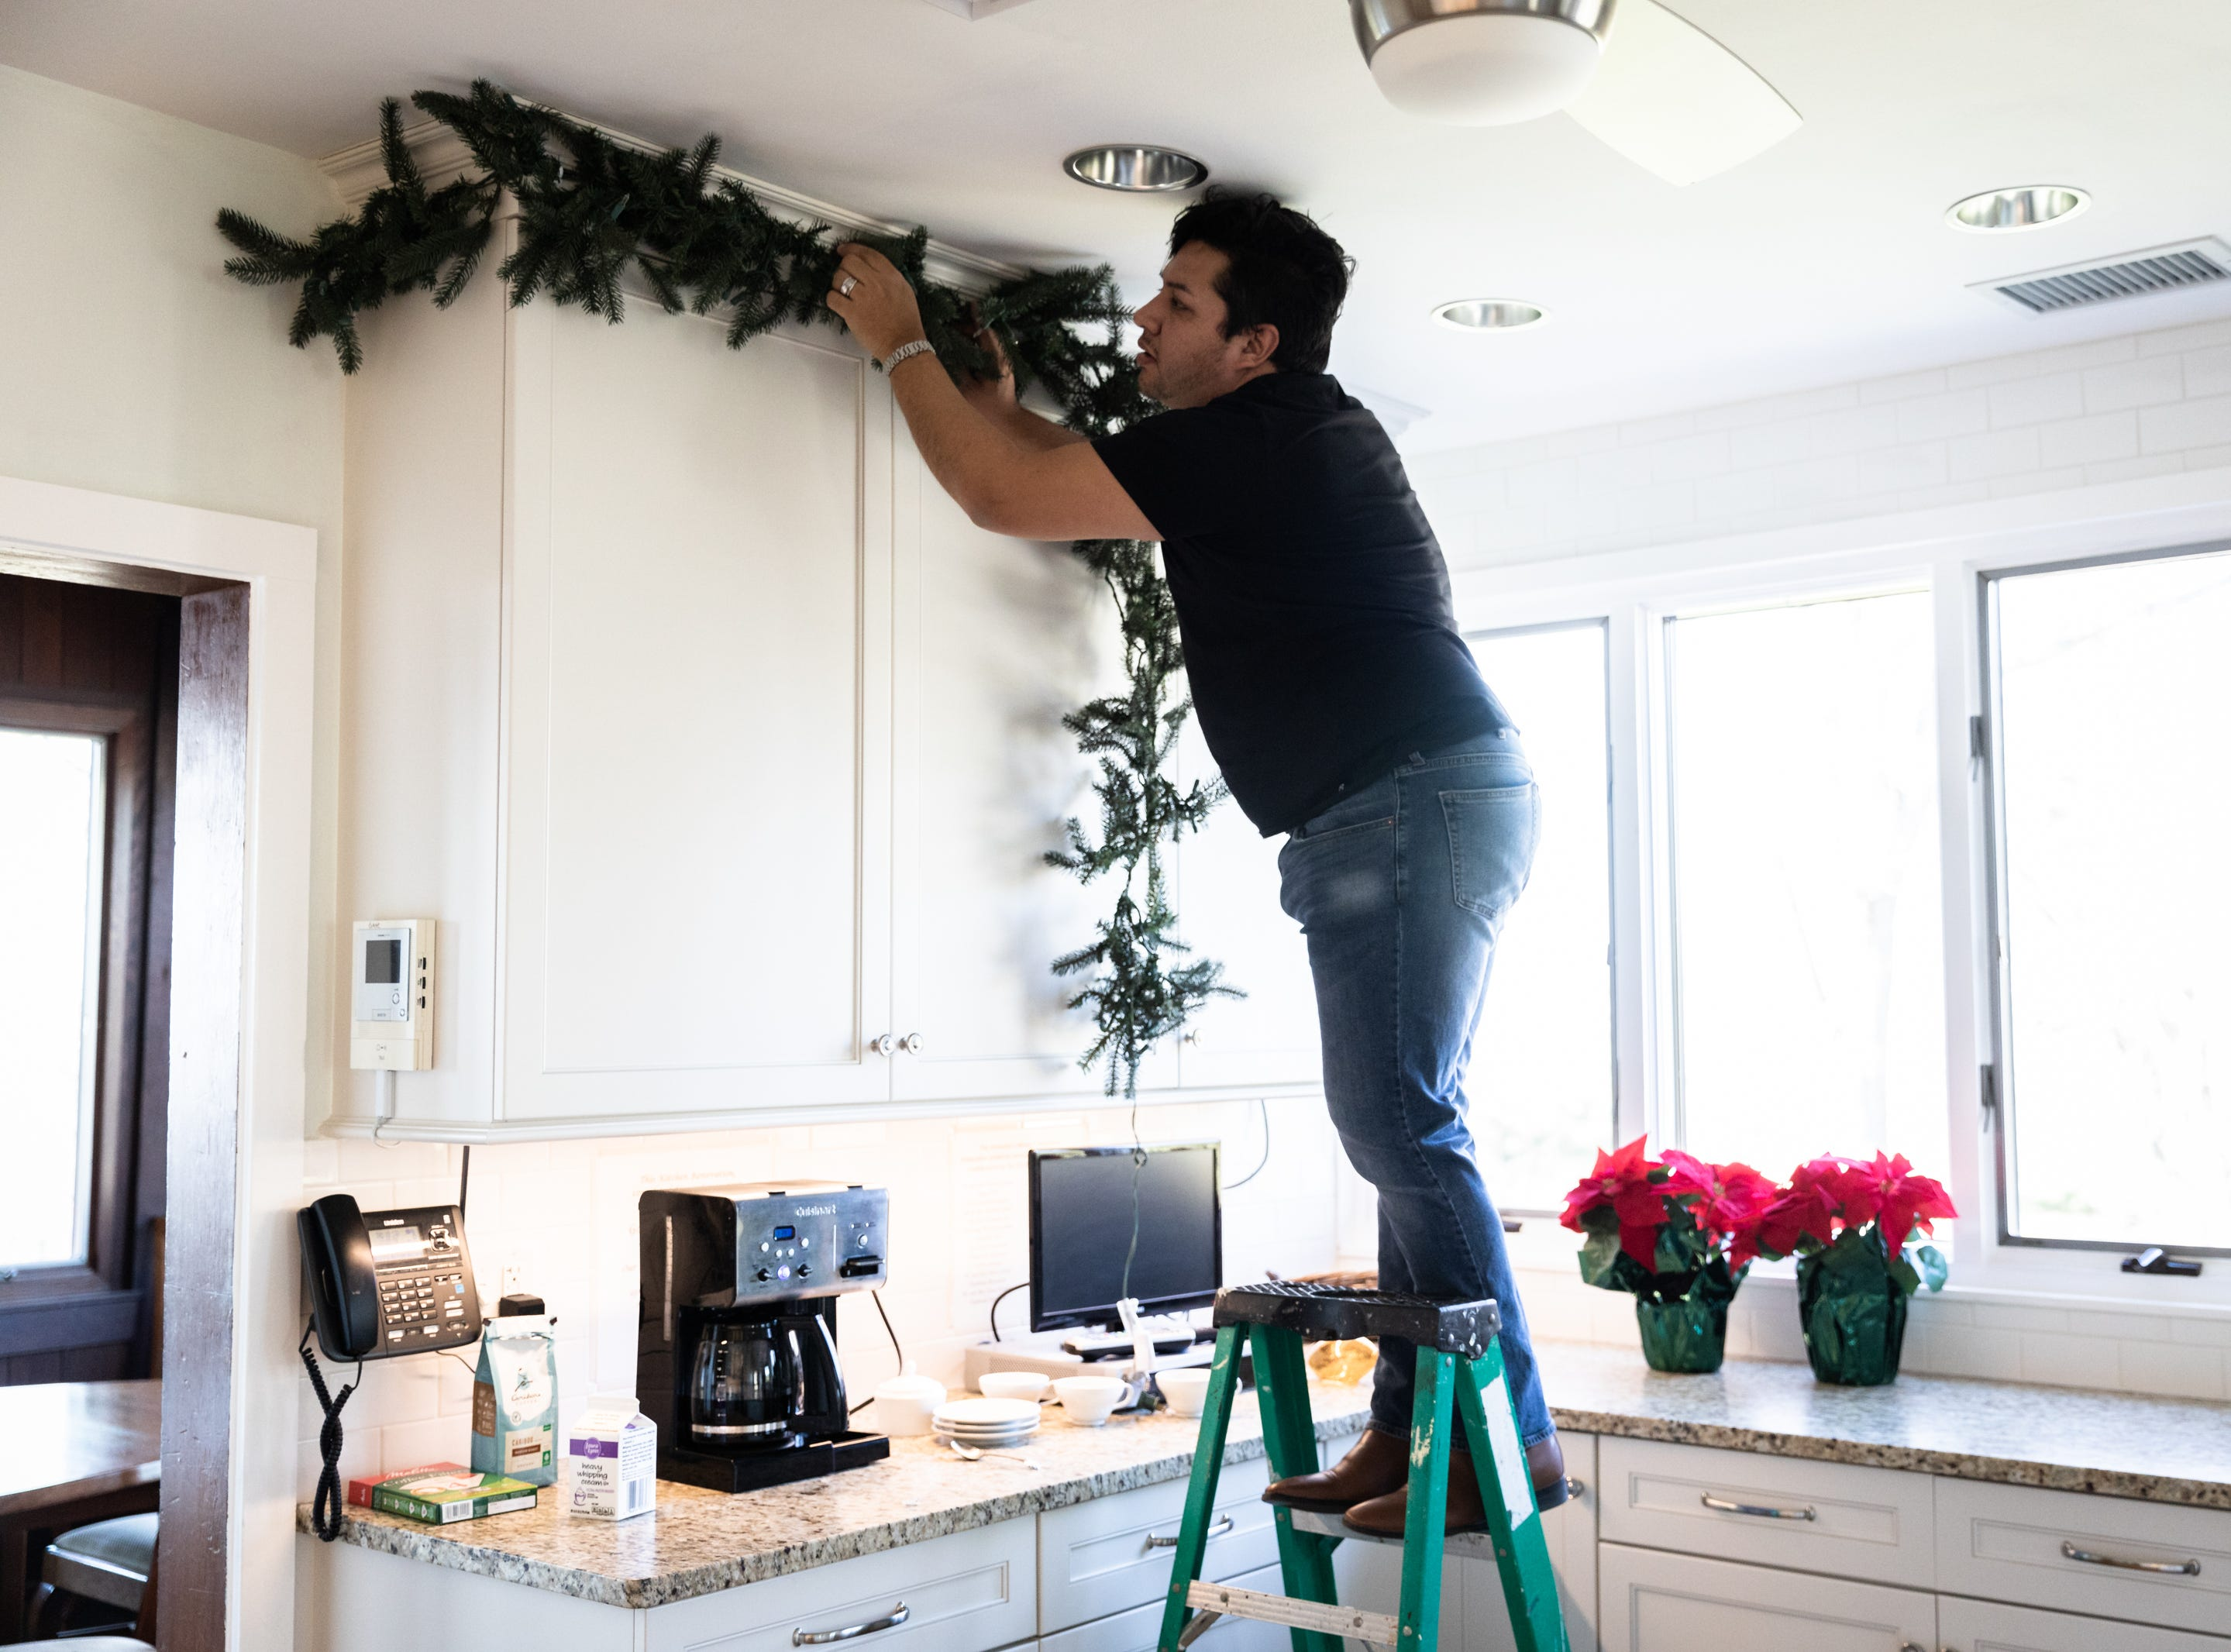 Yona Wade, of the Eastern Band of Cherokee Indians, a member of the Governor's Western Residence Board of Directors, decorates the kitchen for the holidays at the residence on Patton Mountain Road, Nov. 29, 2018.